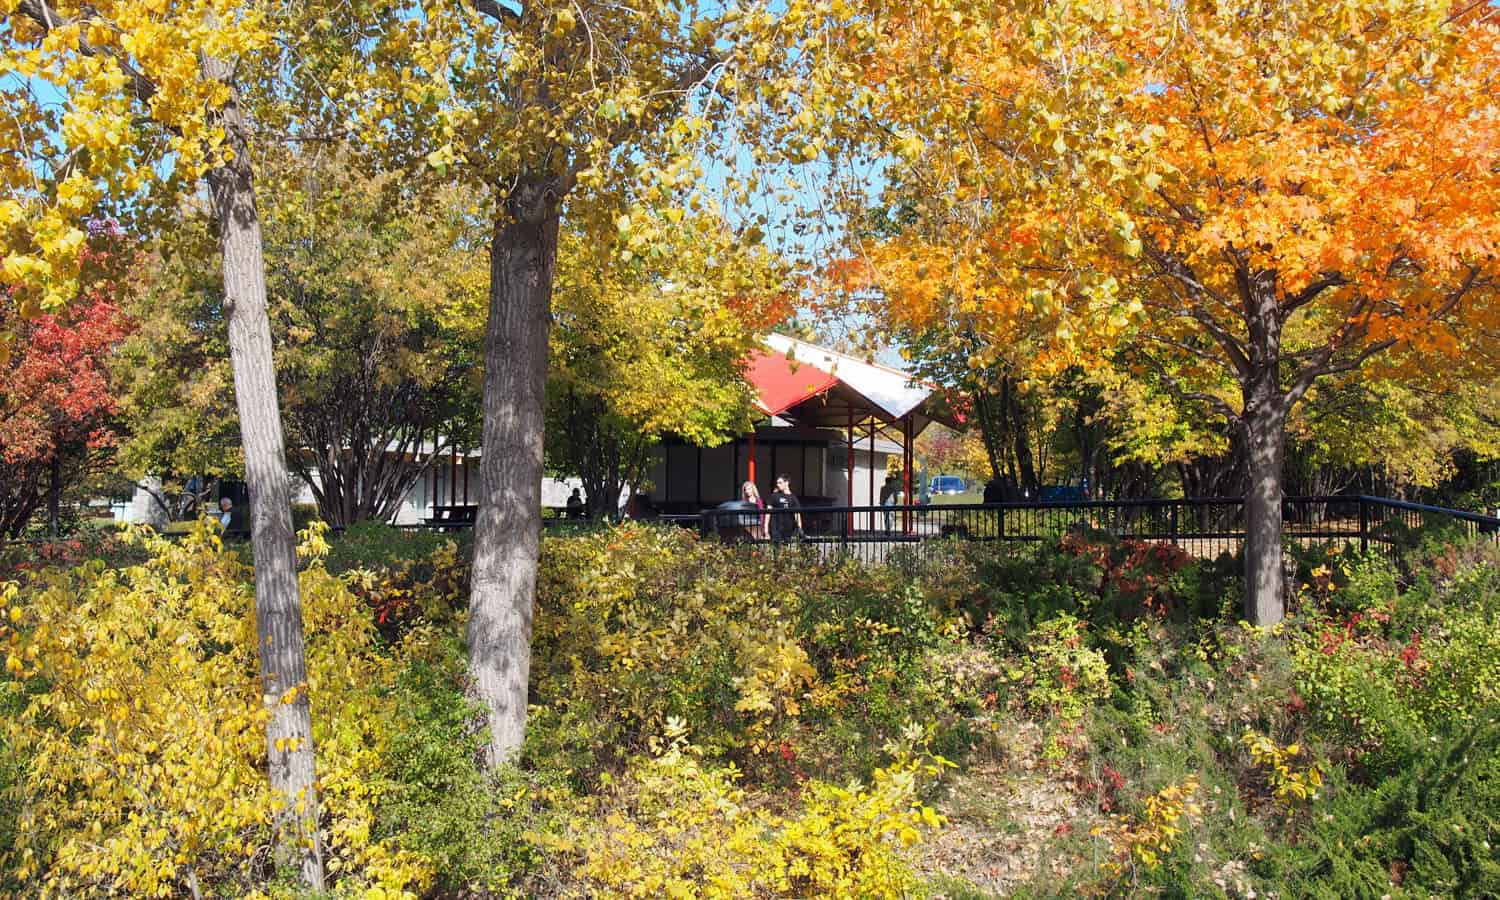 Looking towards the pavilion with fall foliage in the foreground